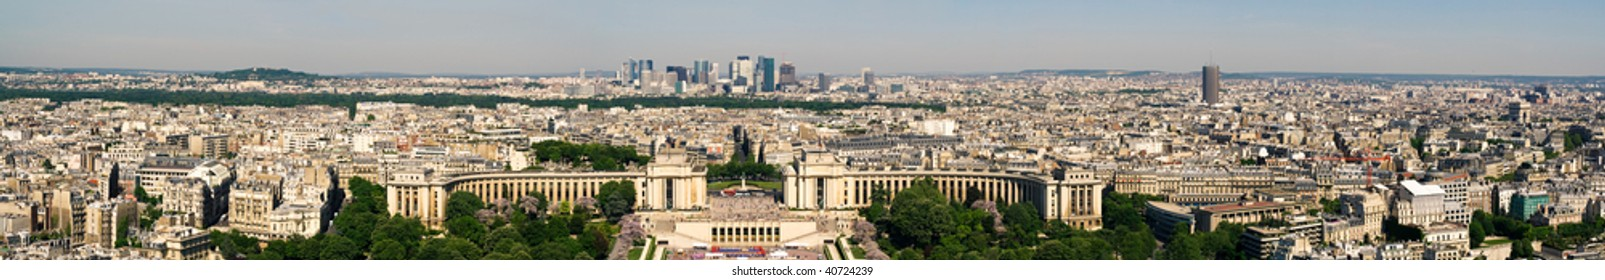 High resolution panorama of Paris from the Eiffel Tower. La Defense and  Palais de Chaillot in the center